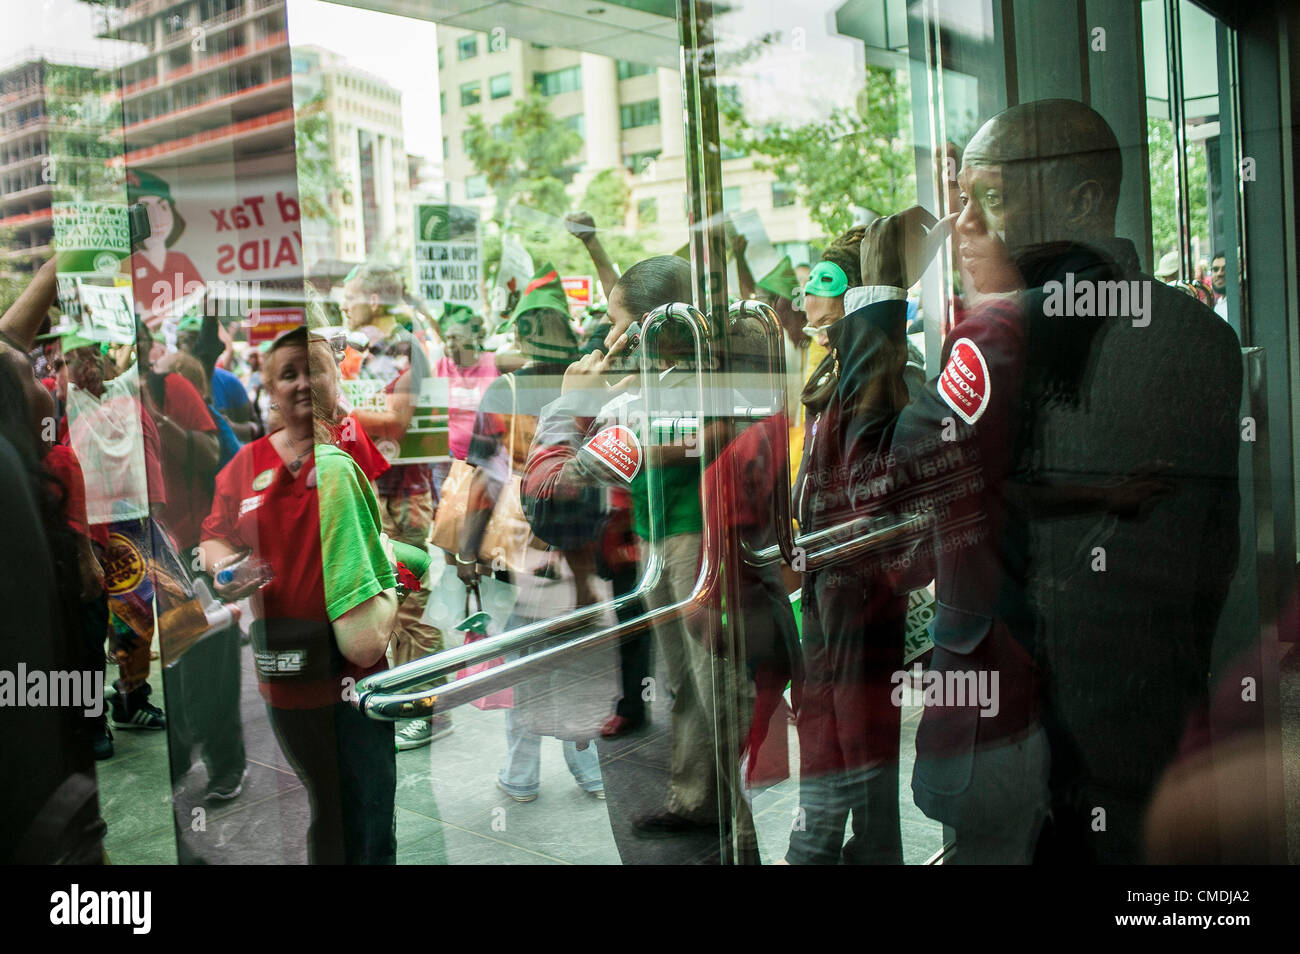 July 24, 2012 - U.S. - A security guard looks on as he guards the door at an office building that activists stopped - Stock Image